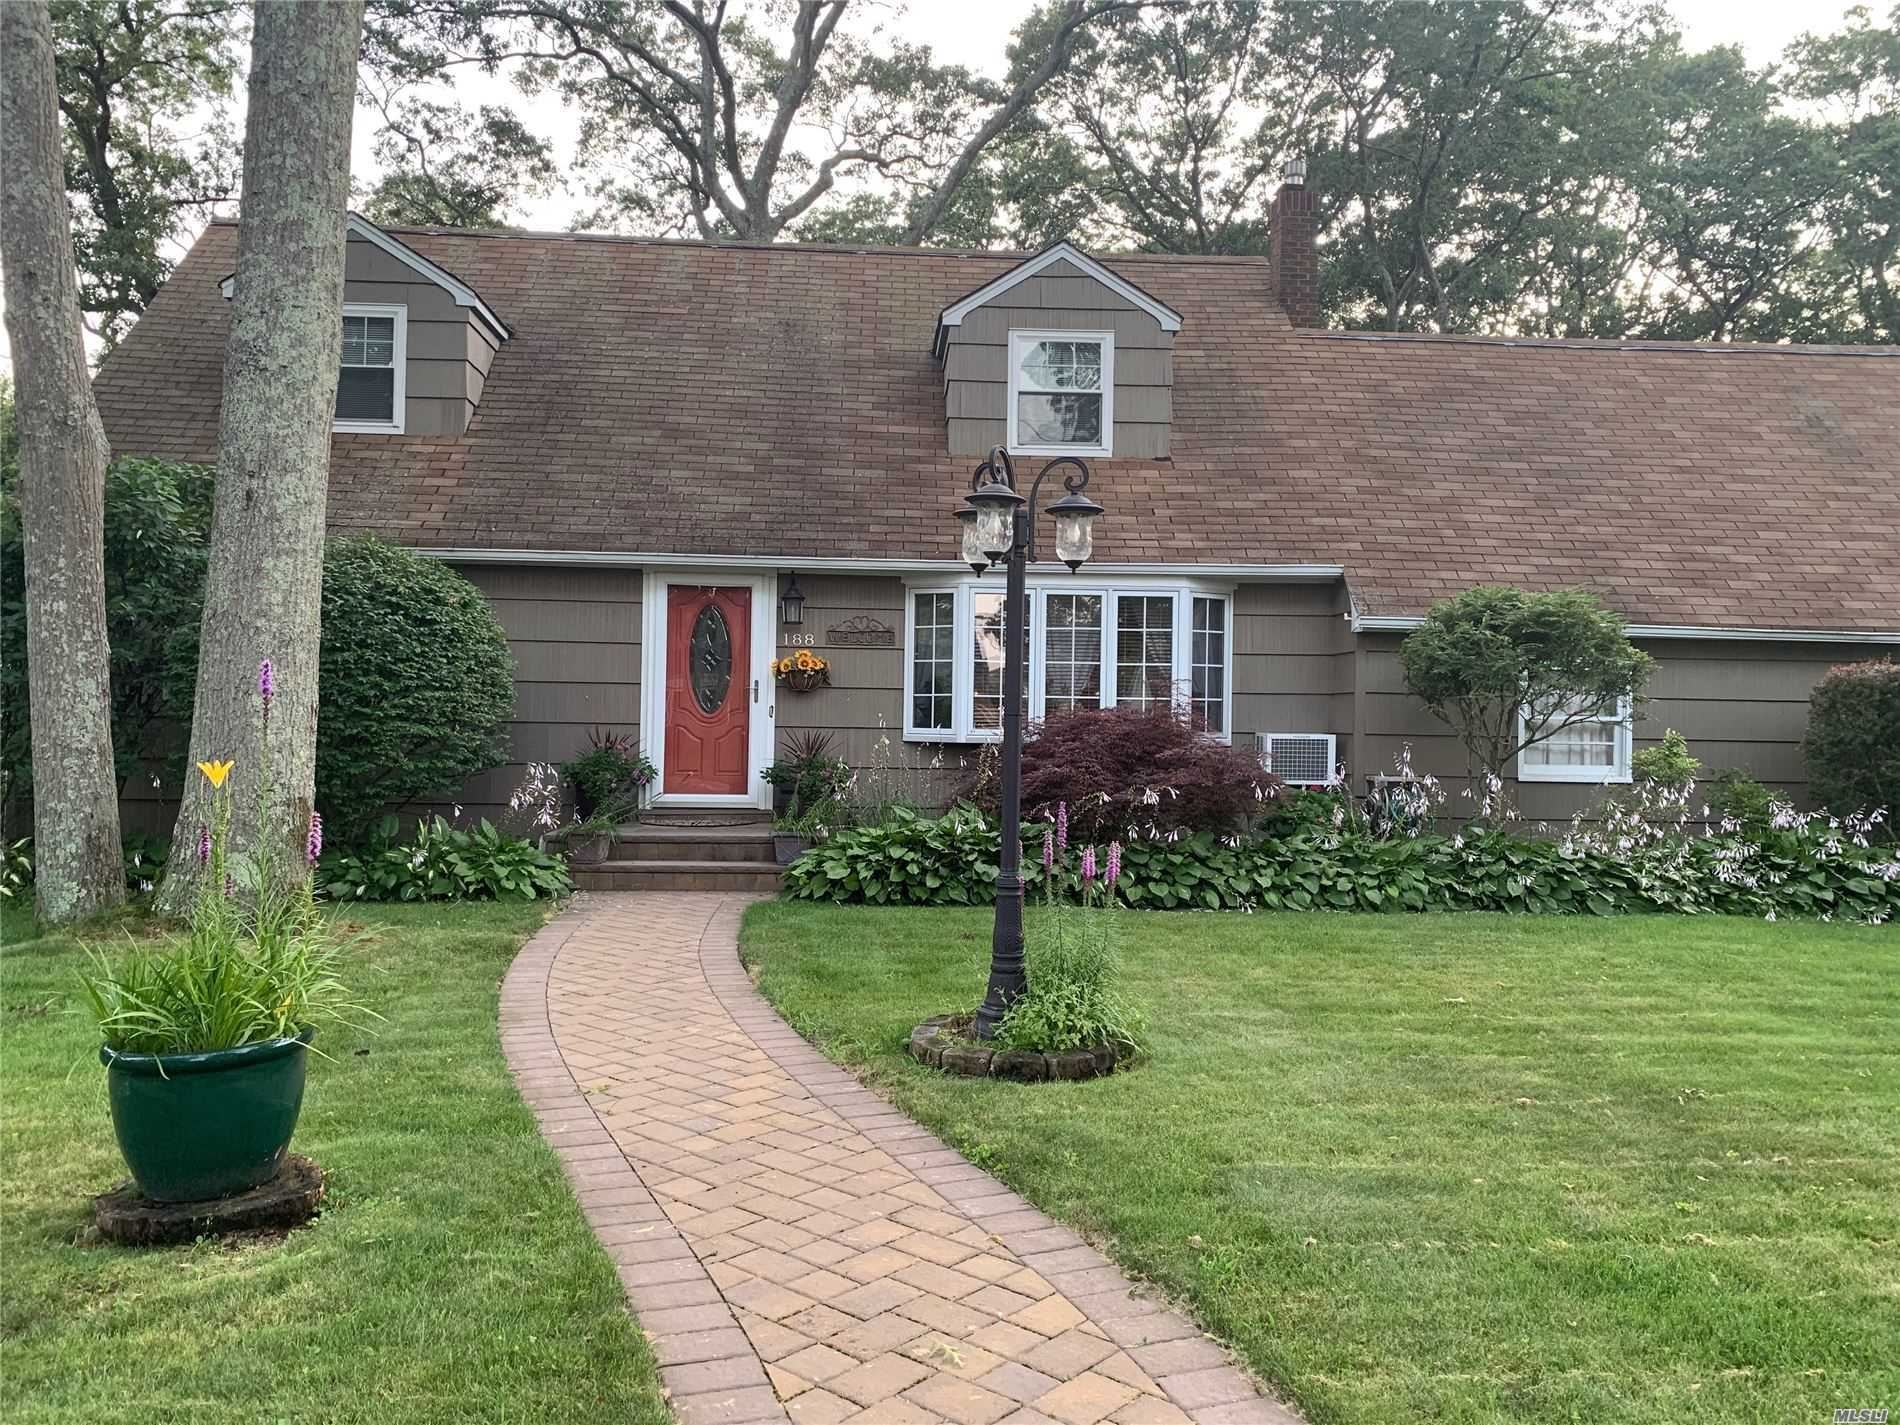 188 Phyllis Drive, Patchogue, NY 11772 - MLS#: 3193446